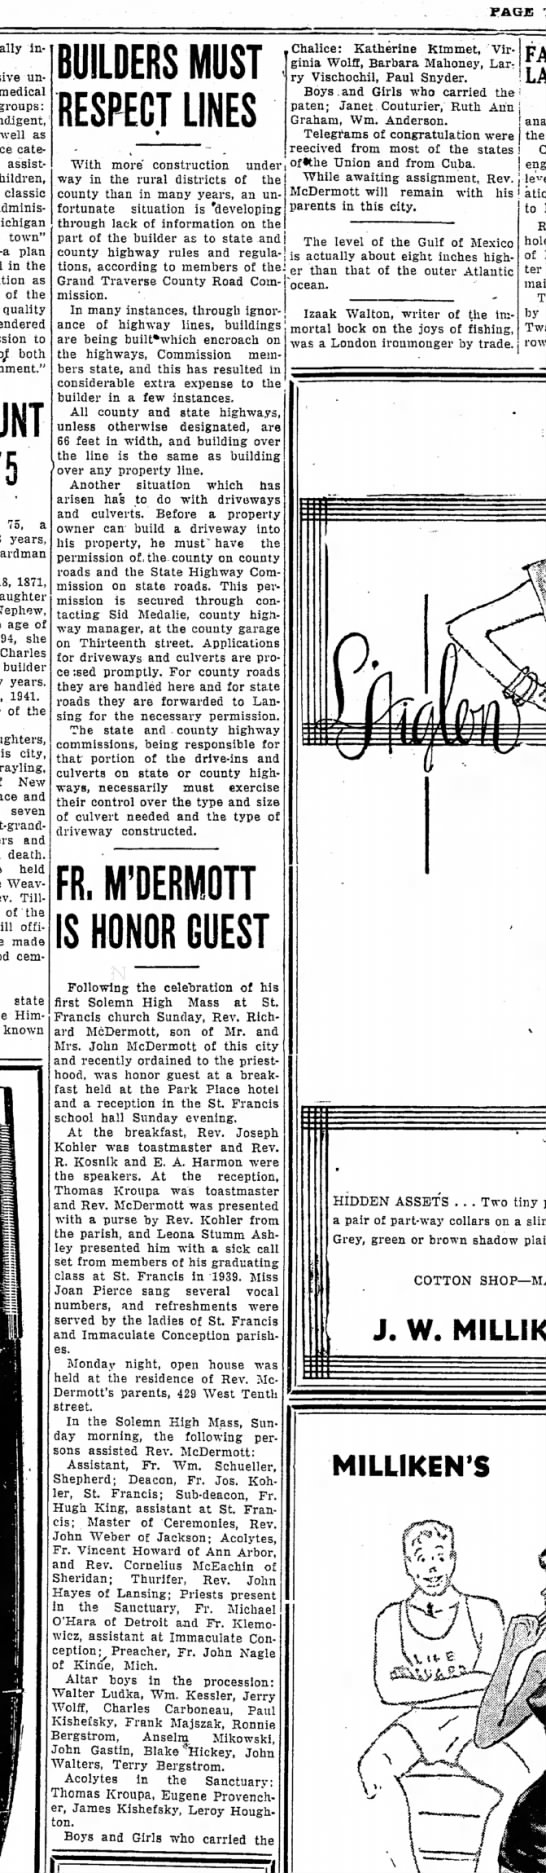 McDermott - PAGE indigent. under medical groups: well as...